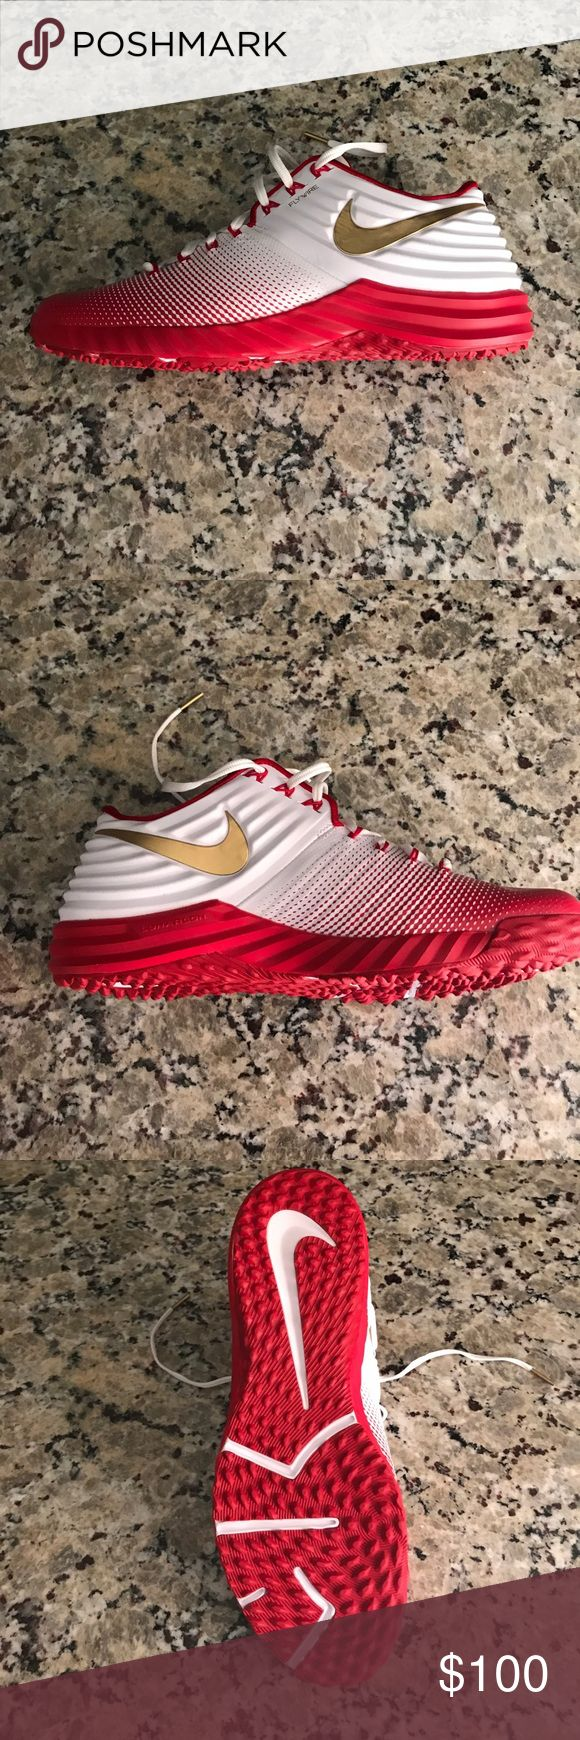 Nike Lunar Trout Turf Trainers Brand new limited edition Mike Trout Limited Edition Trainer. Never warm took a gamble on buying half size smaller than my usual sizes because that's all they had. Too small for me. Nike Shoes Athletic Shoes